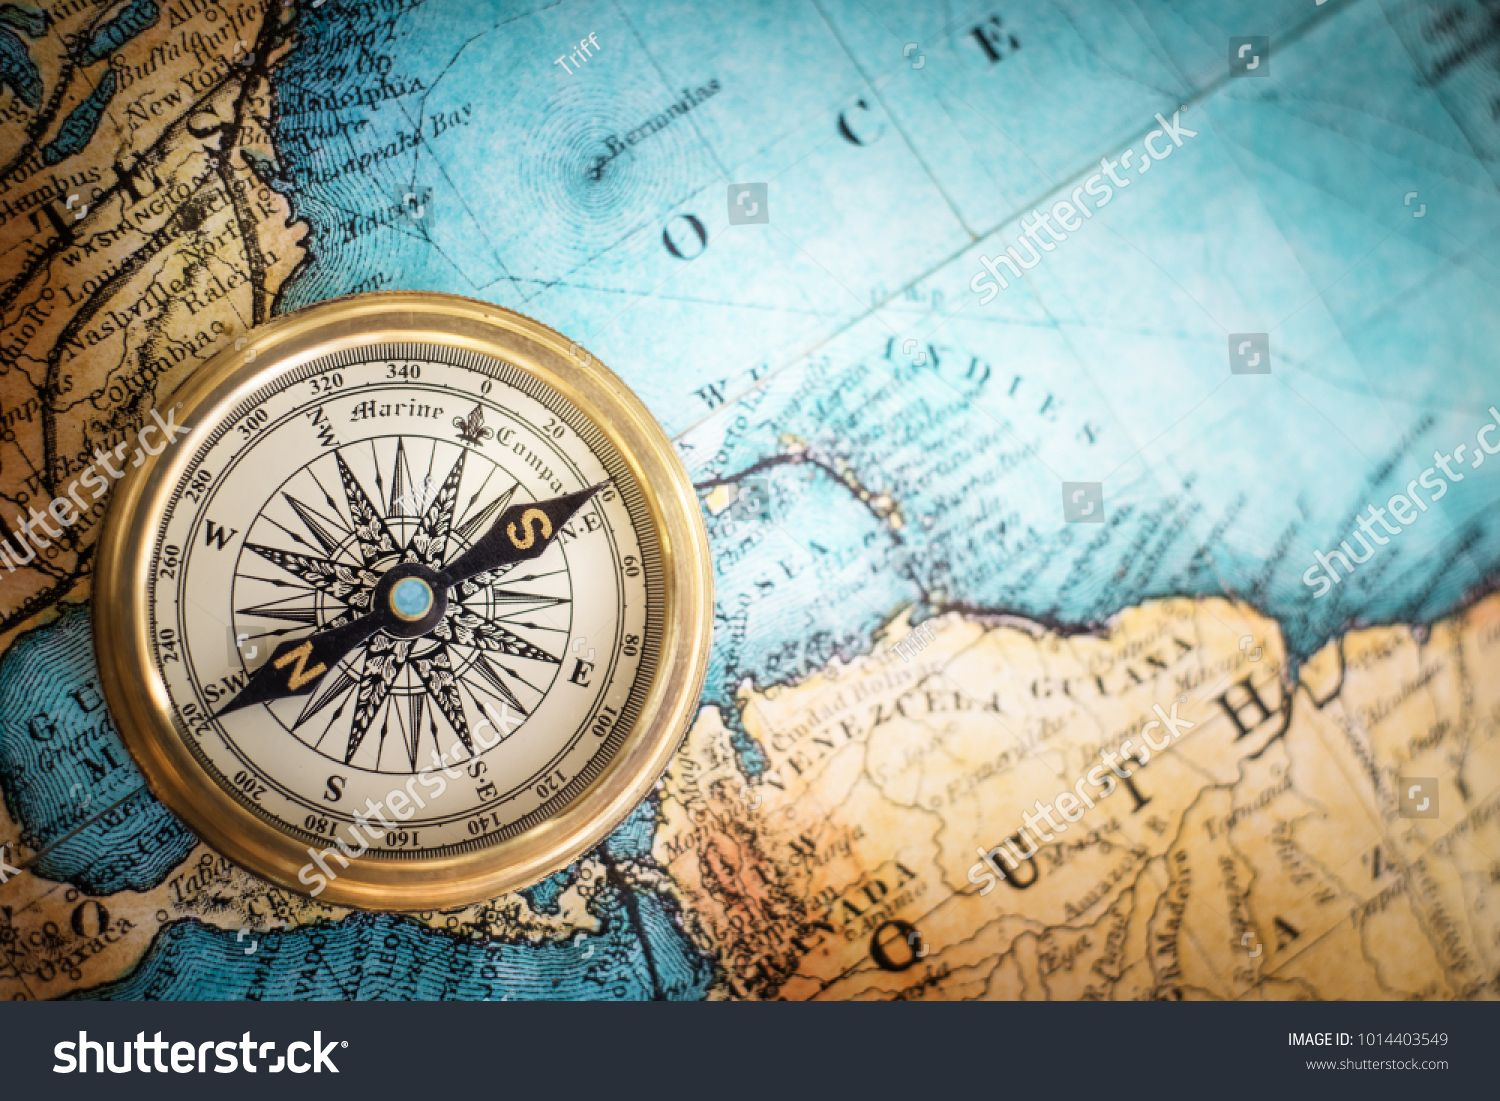 Old Vintage Retro Compass On Ancient Map Background Travel Geography Navigation Concept Background Ancient Maps Vintage Compass Geography